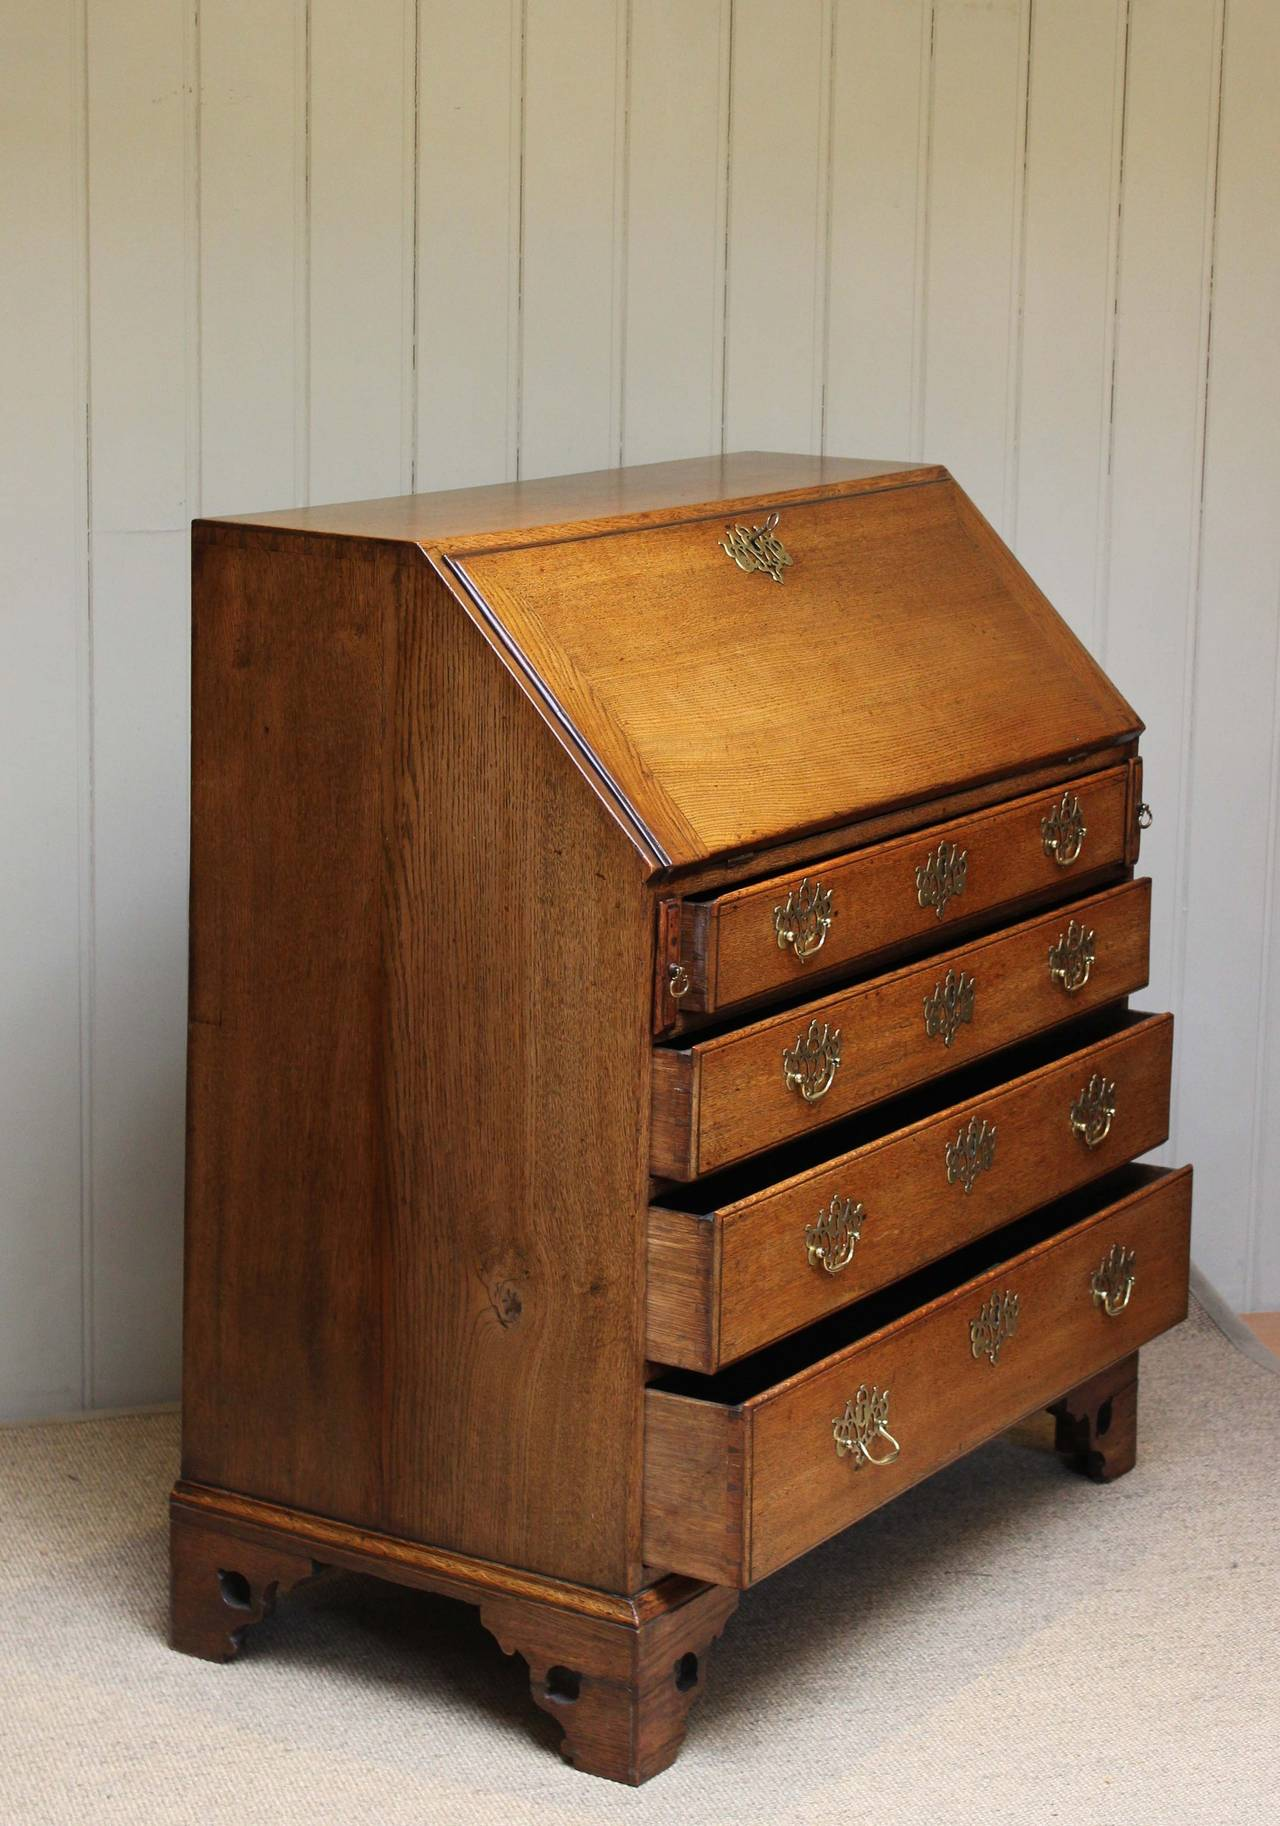 georgian oak bureau at 1stdibs. Black Bedroom Furniture Sets. Home Design Ideas